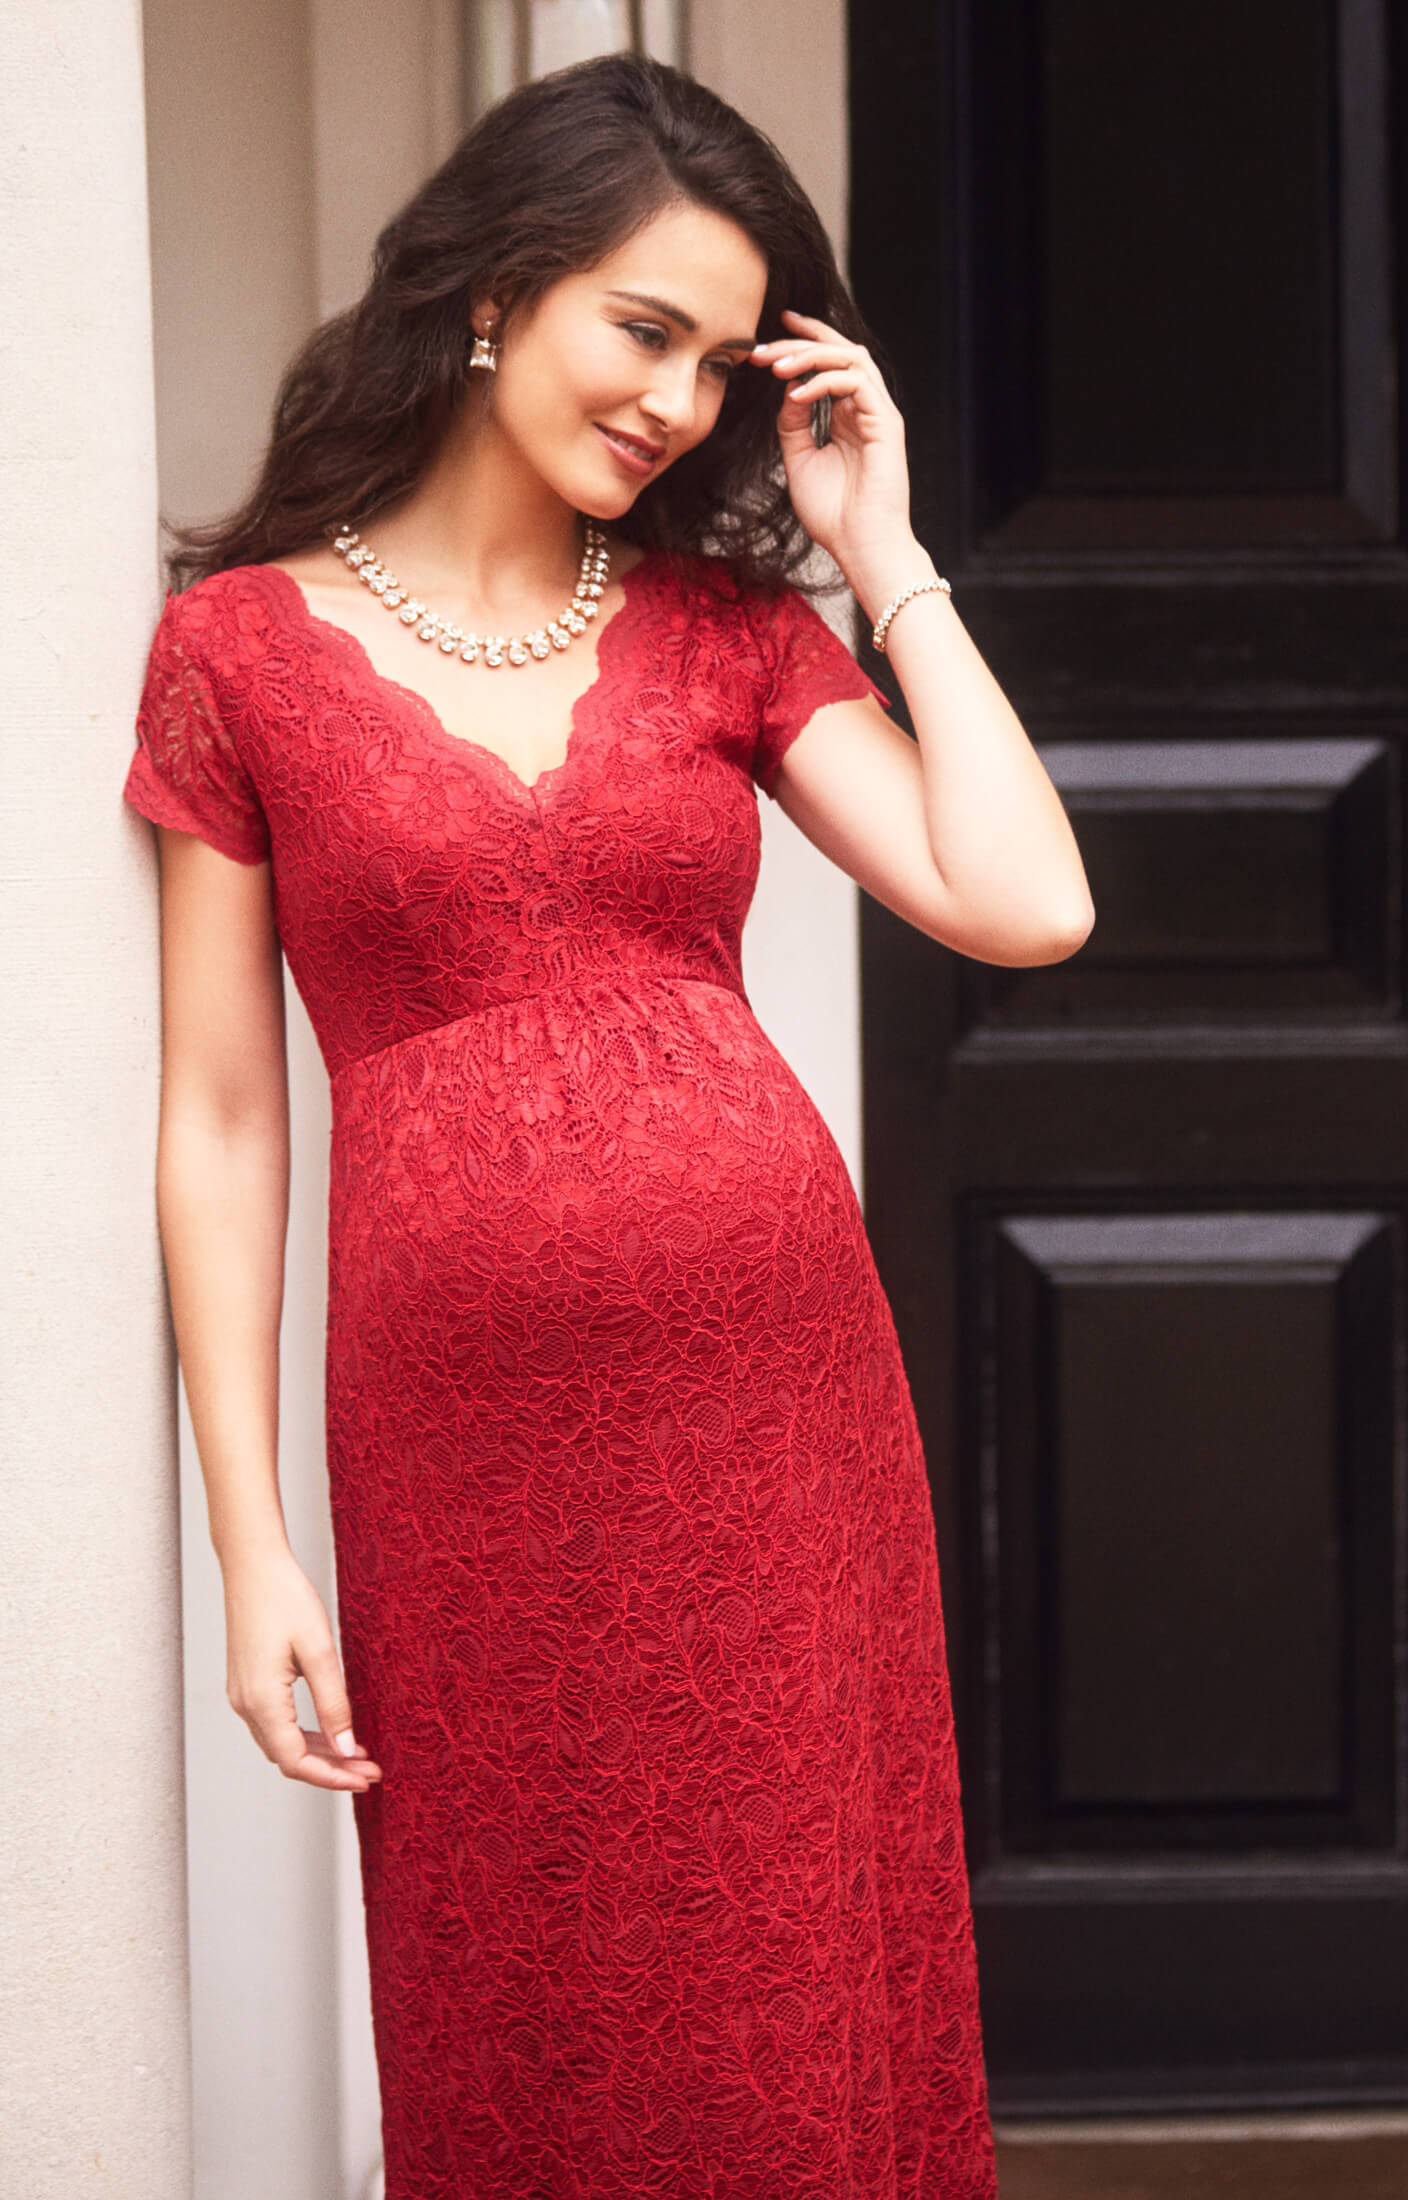 Laura Maternity Lace Gown Long Scarlet  Maternity Wedding Dresses Evening Wear and Party